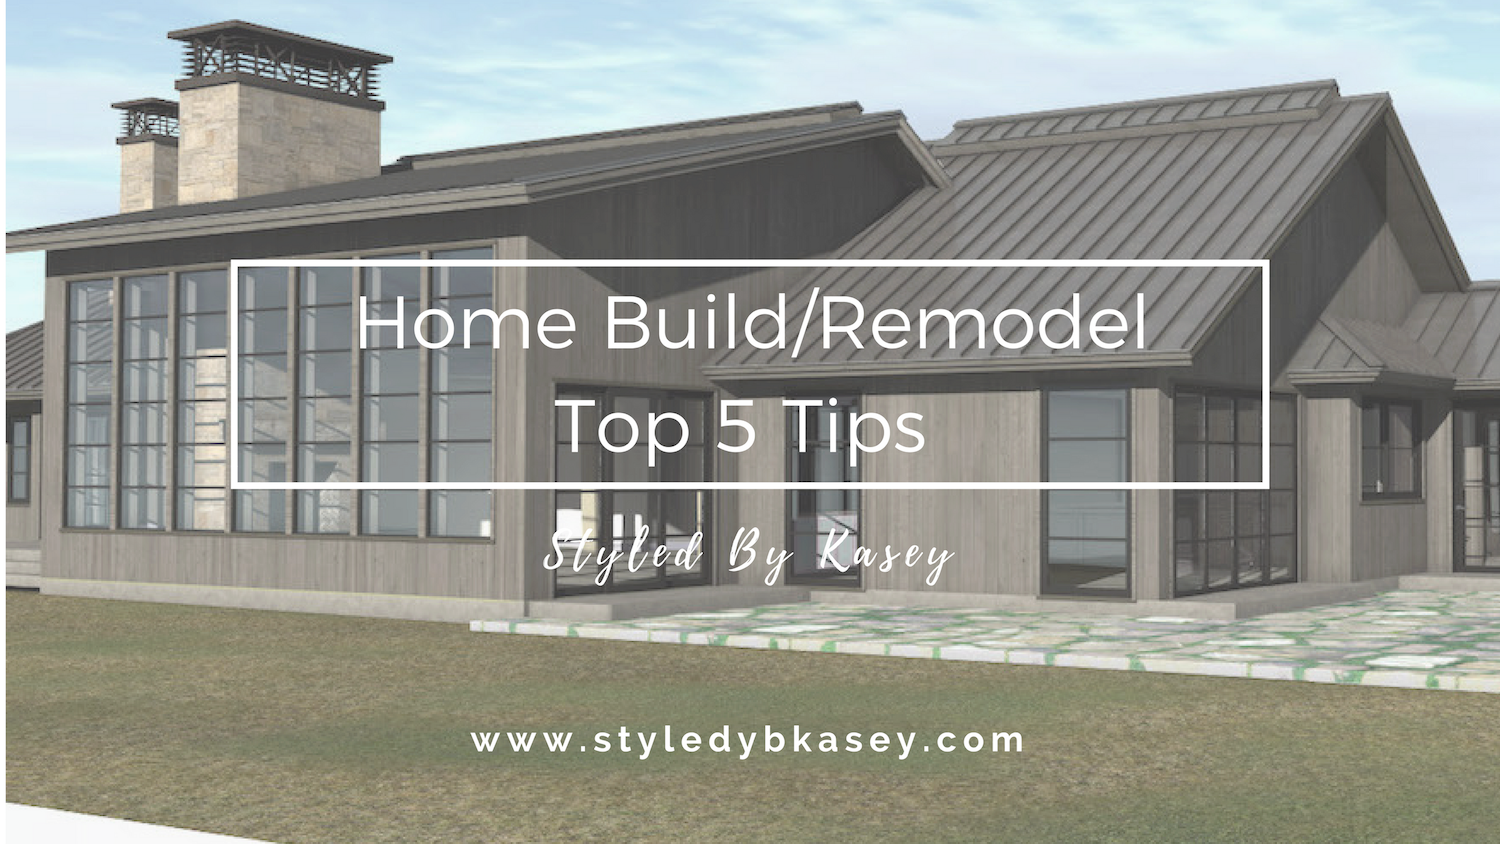 Home Building Tips home build/remodel || top 5 tips - styledkasey